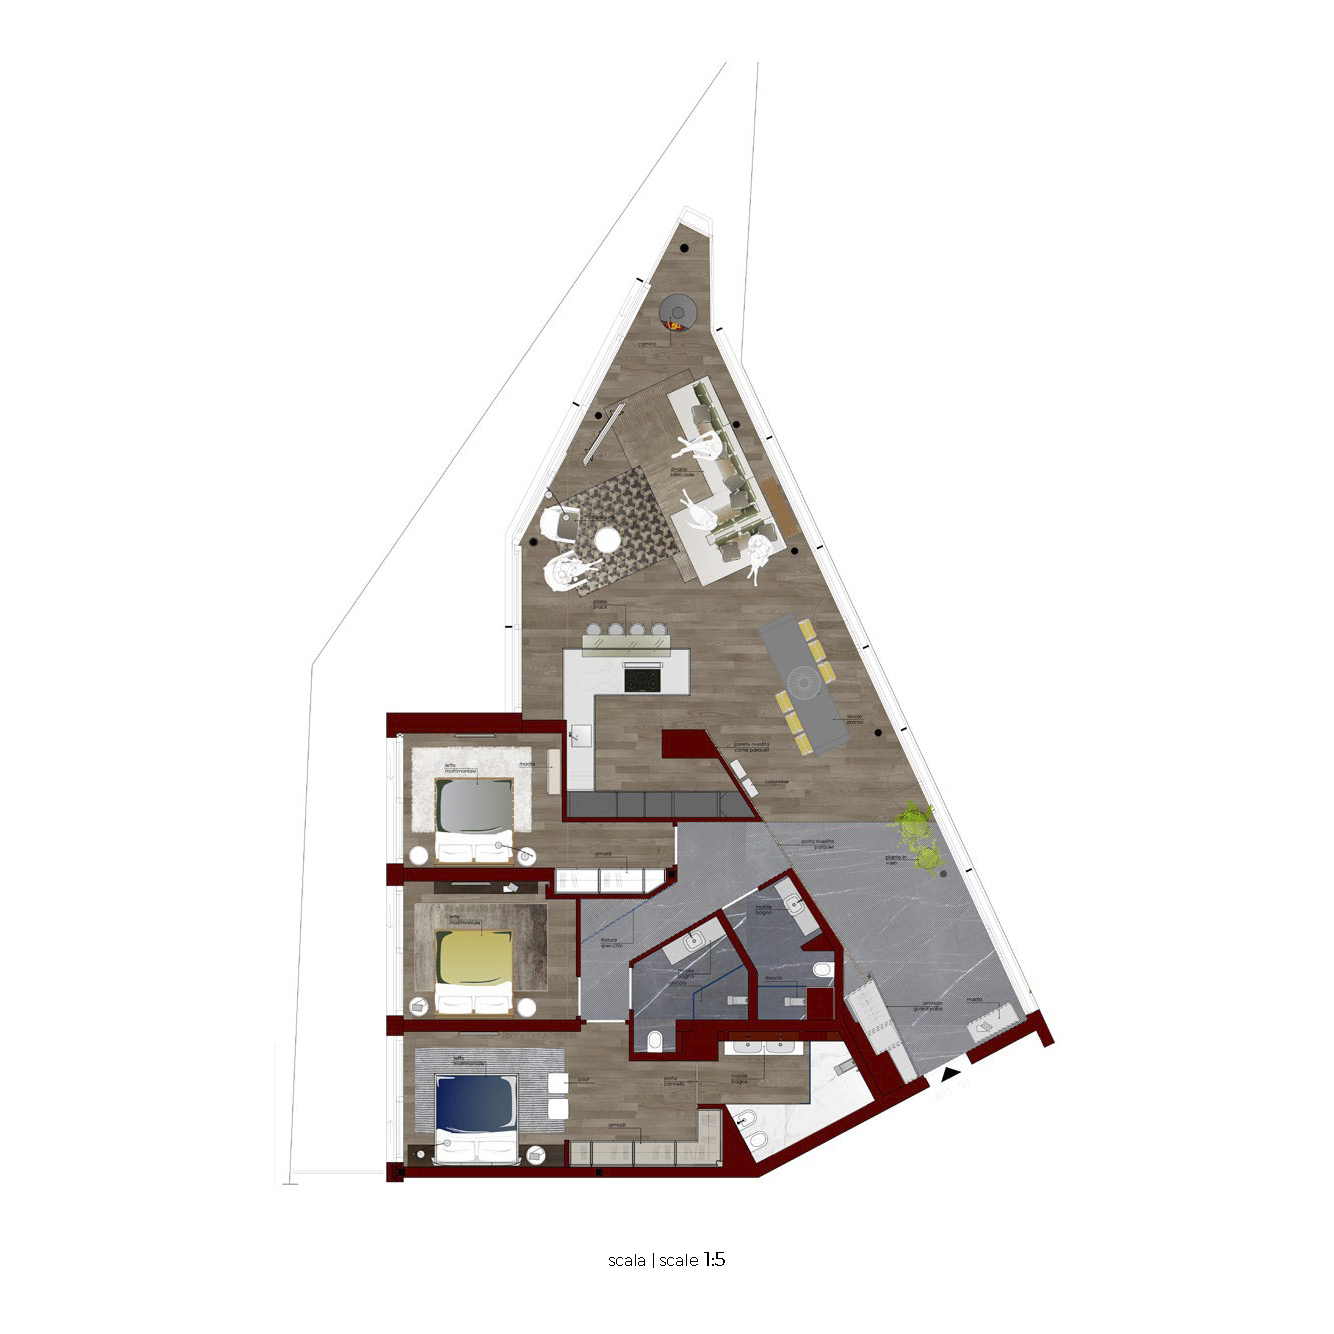 Plan of modern innovative design in Lugano Switzerland Ticino